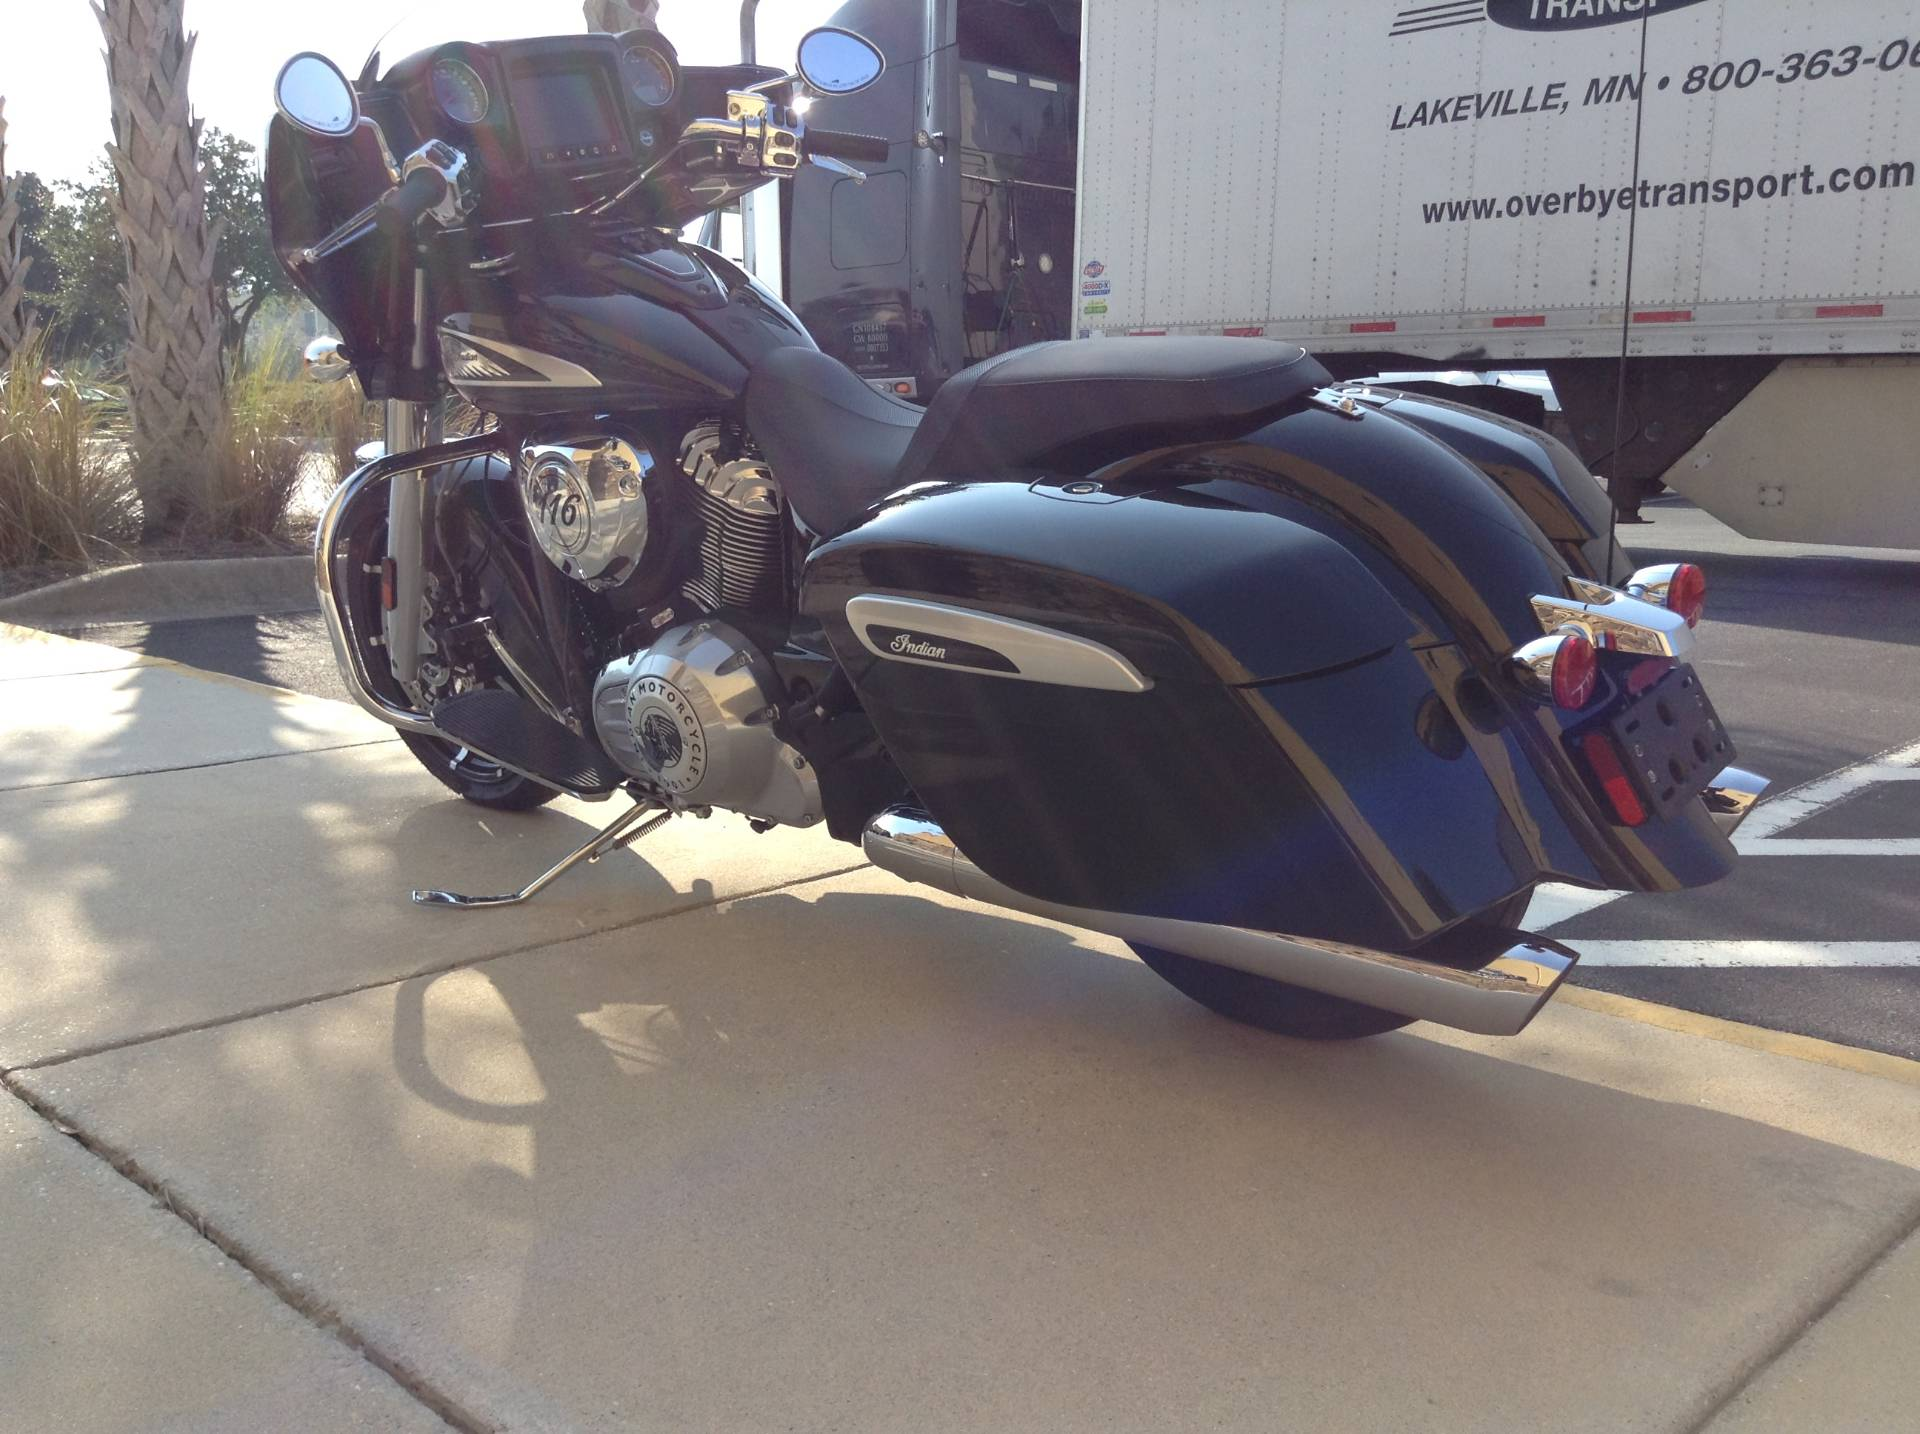 2021 Indian CHIEFTAIN LIMITED in Panama City Beach, Florida - Photo 9